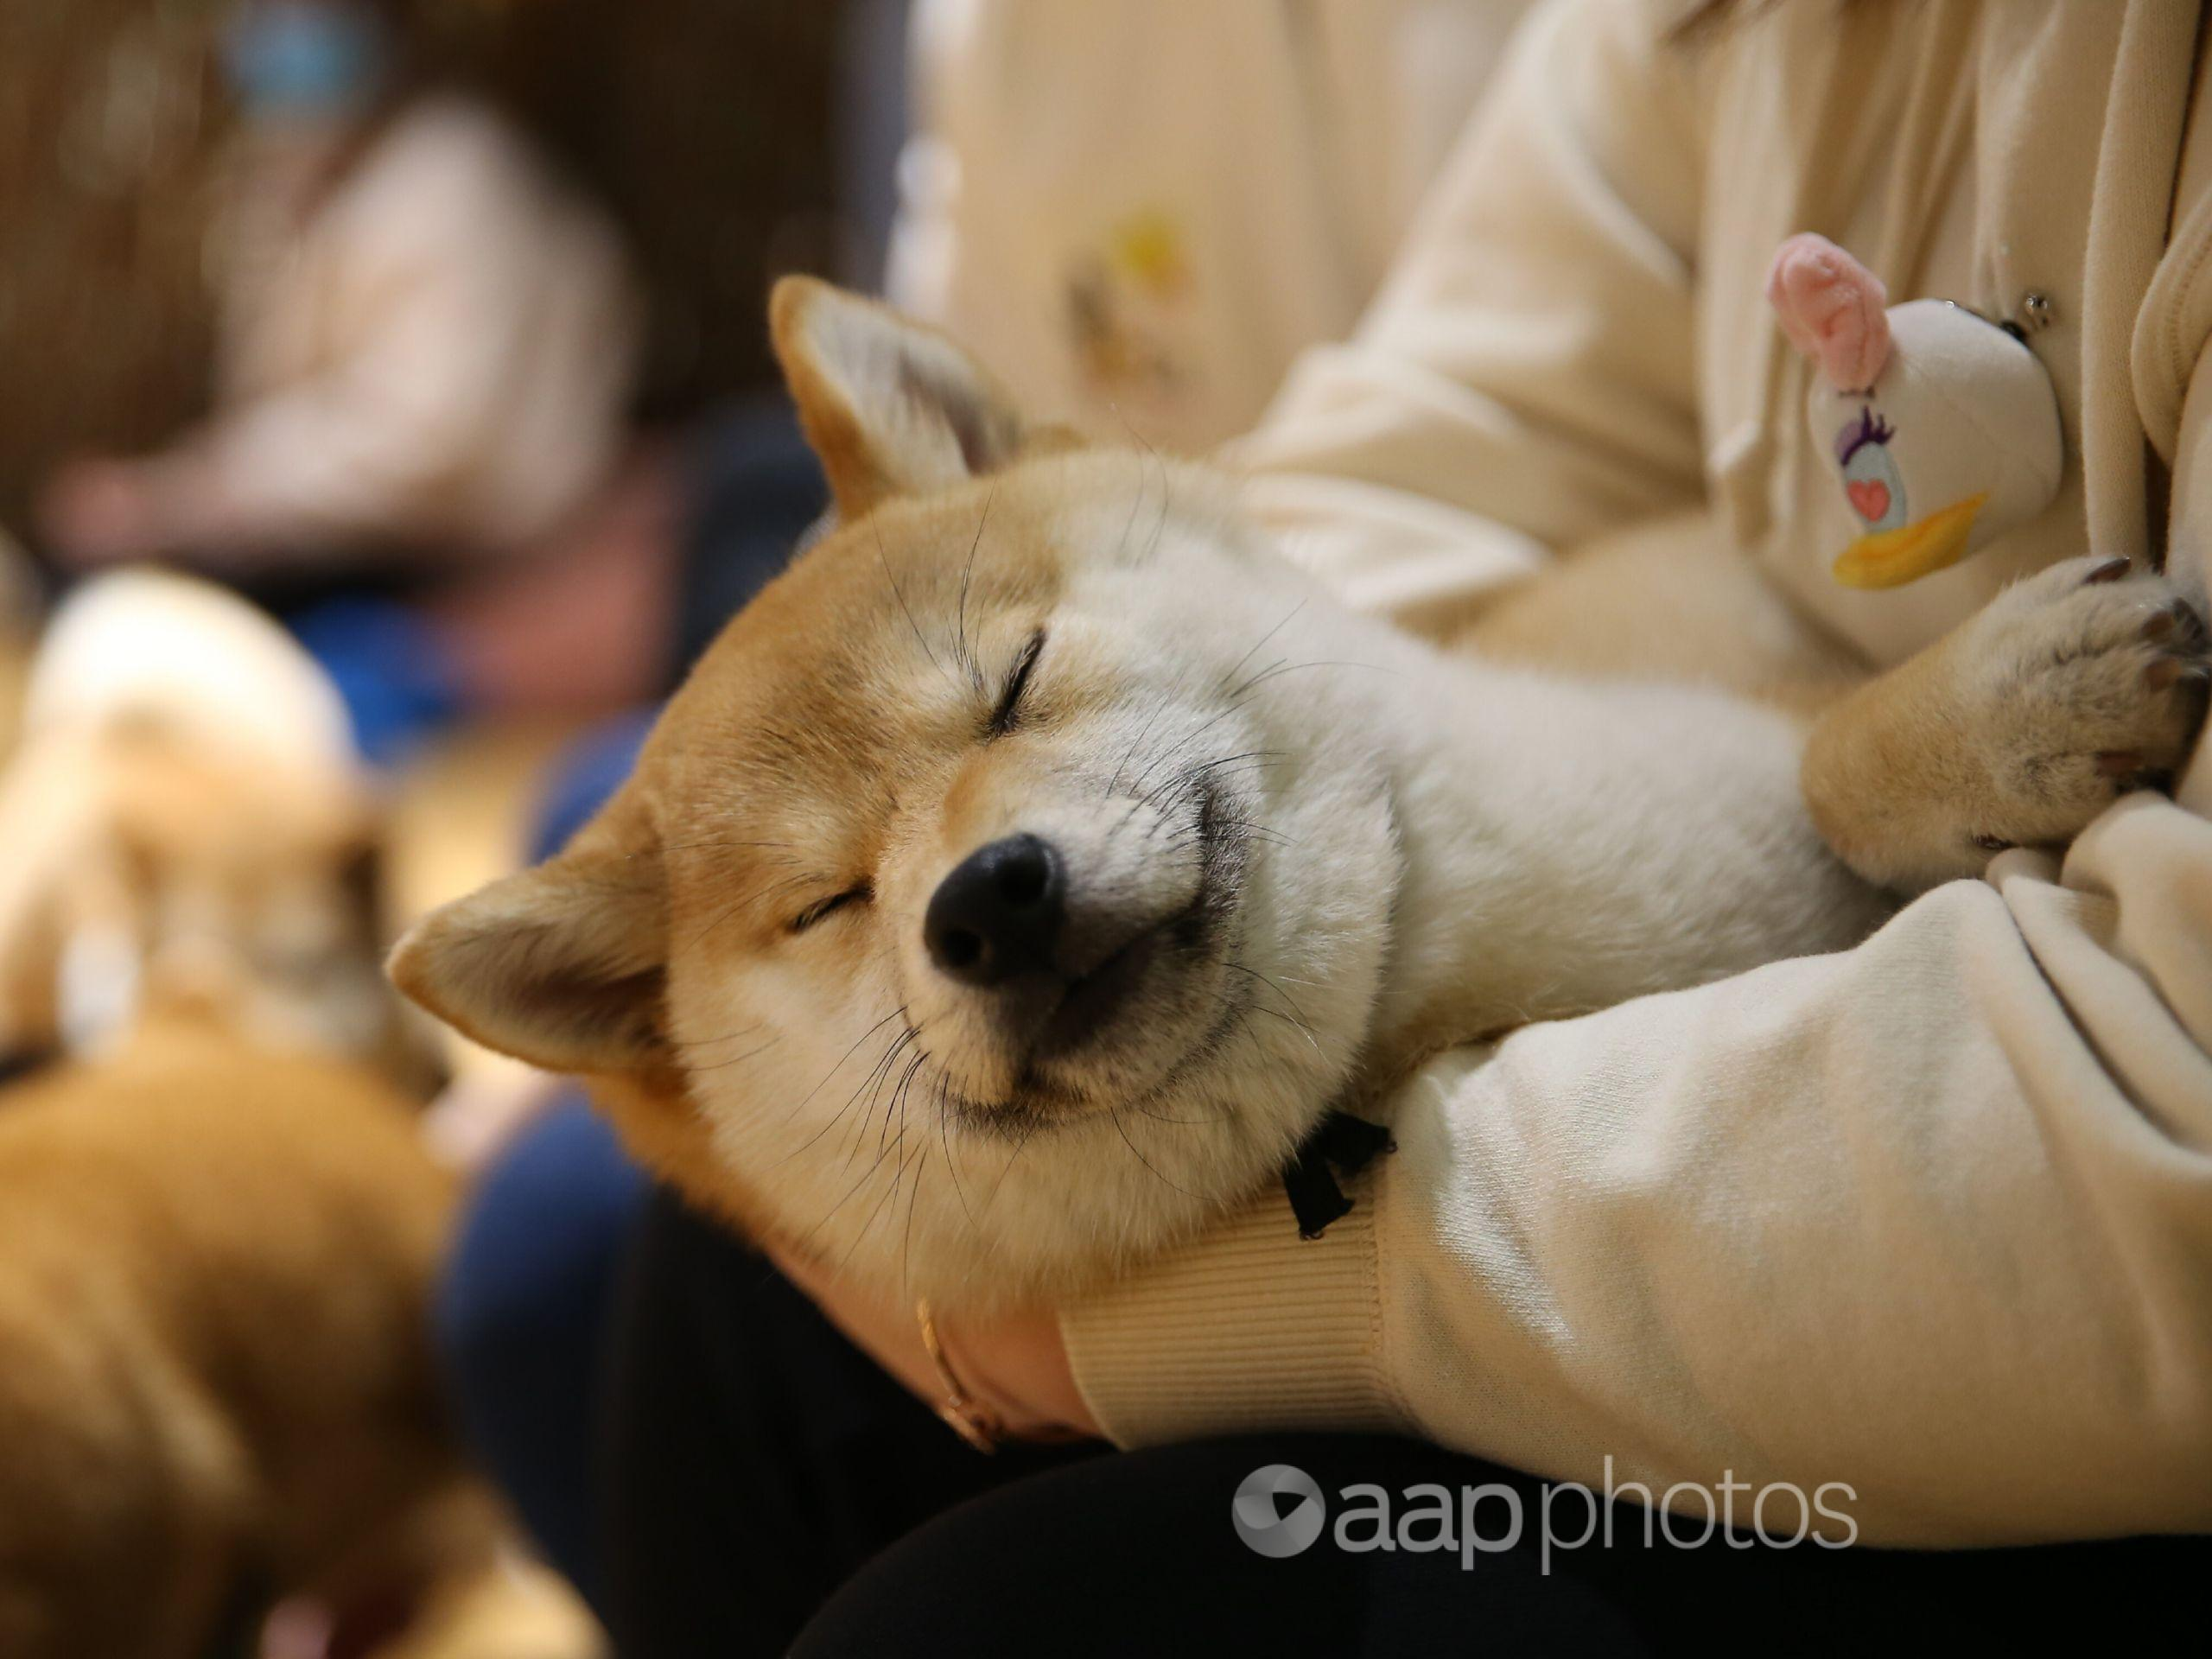 A dog rests on a person's lap